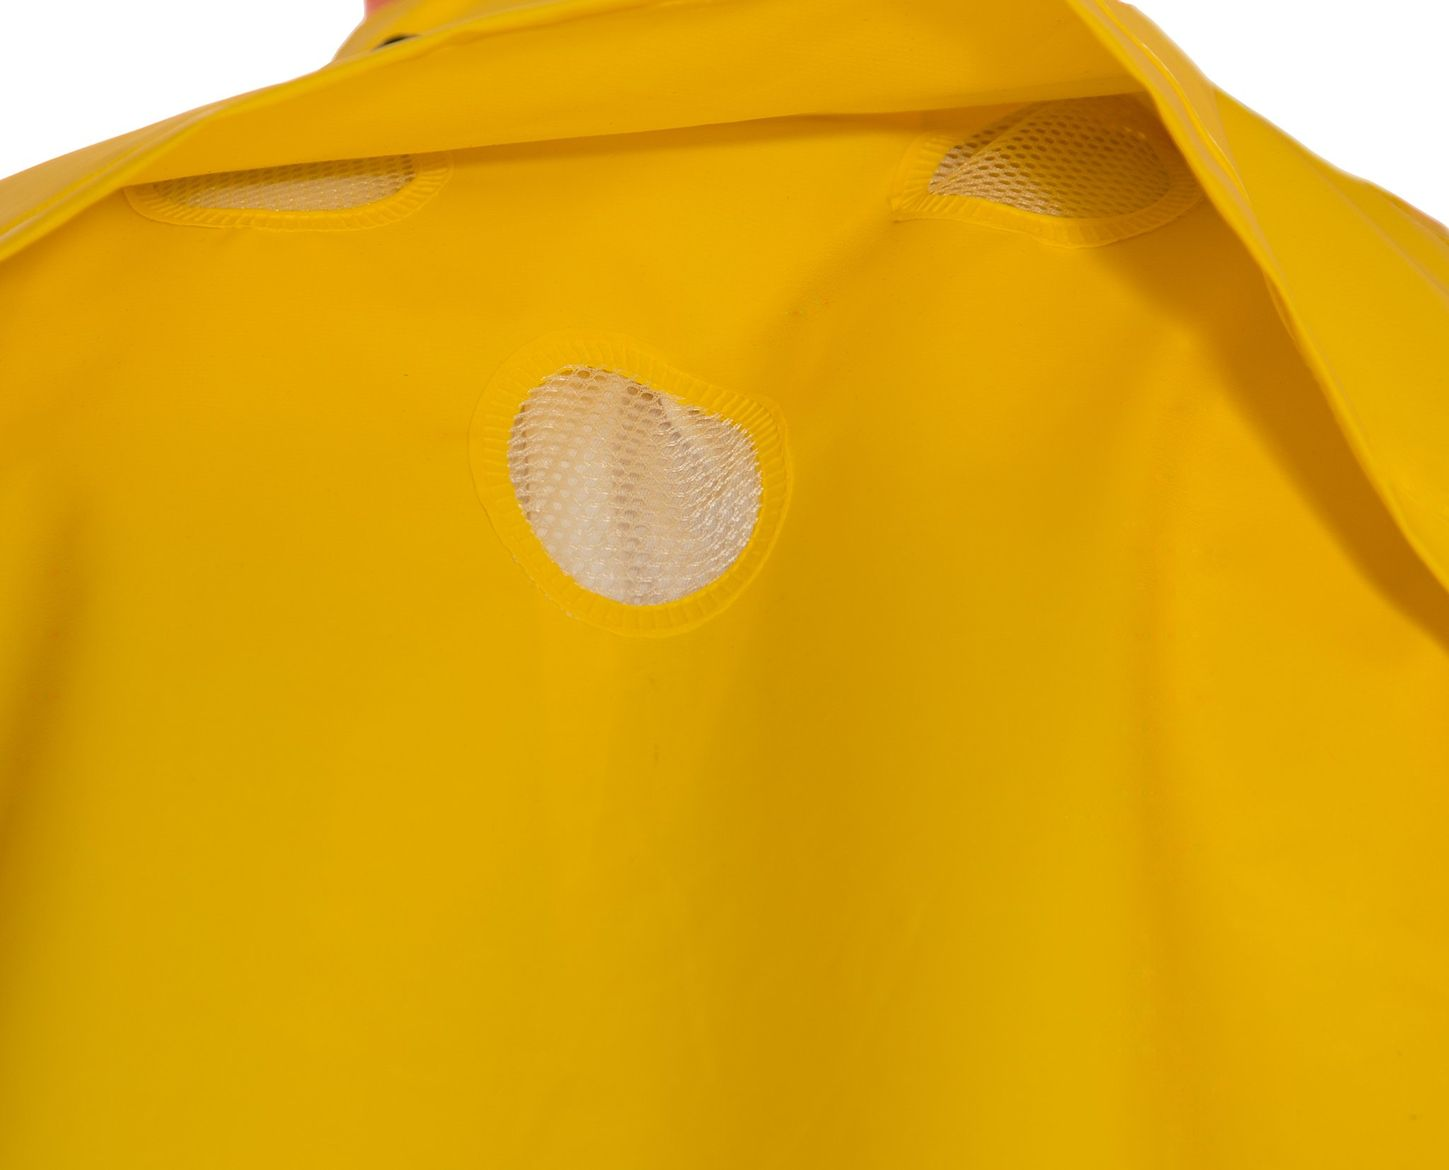 tingley-c56207-durascrim-flame-resistant-coat-pvc-coated-chemical-resistant-with-hood-snaps-48-example.jpg